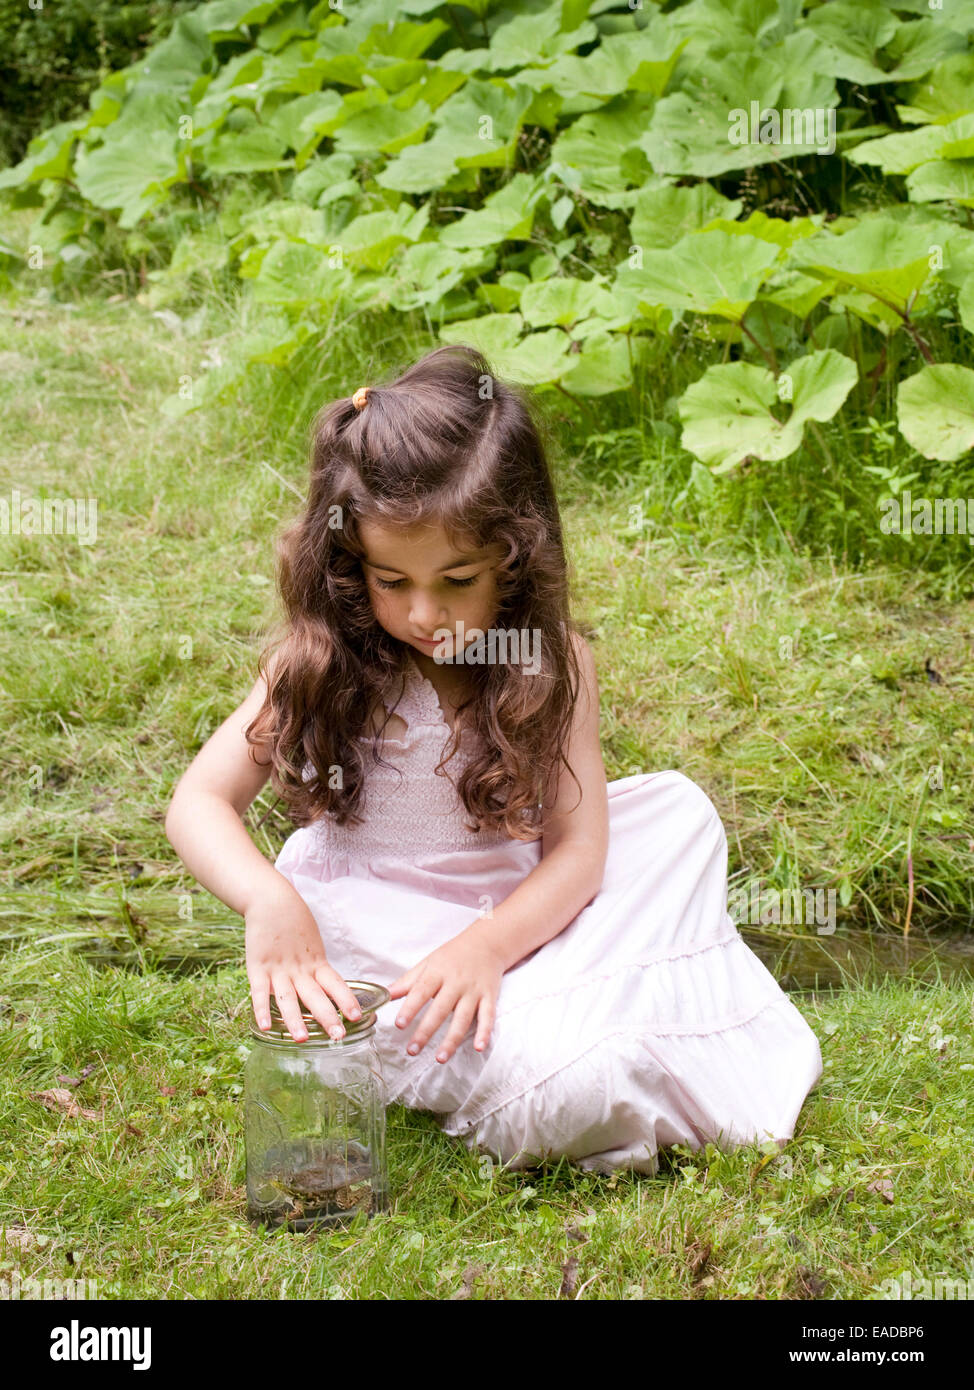 young girl with frog in jar in country - Stock Image